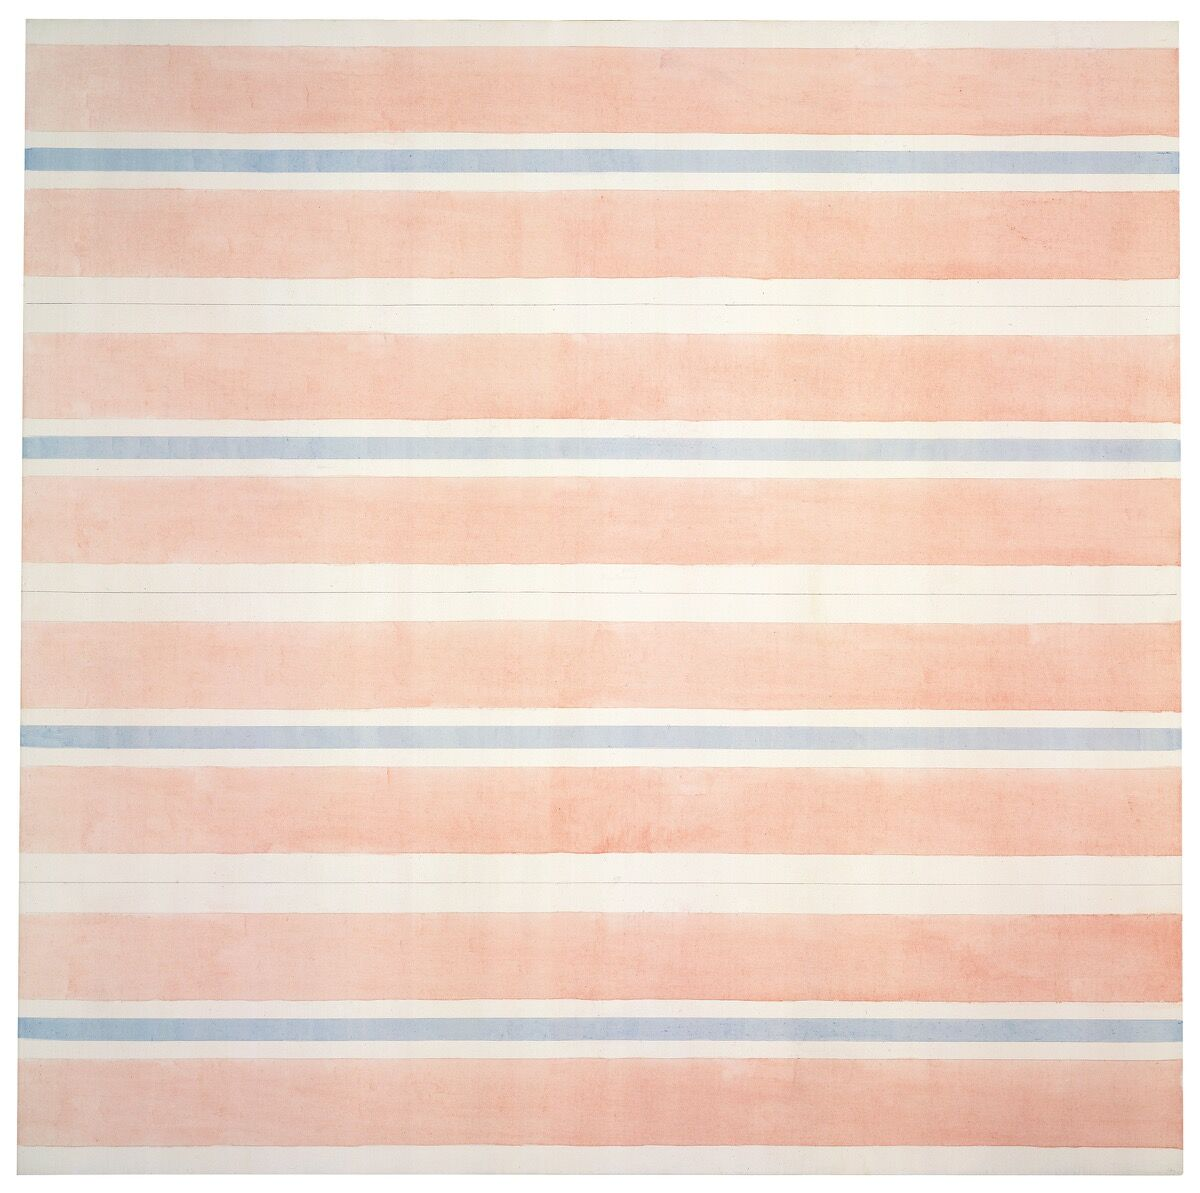 Agnes Martin, Affection, 2001. © 2018 Estate of Agnes Martin / Artists Rights Society (ARS), New York. Courtesy of Pace.